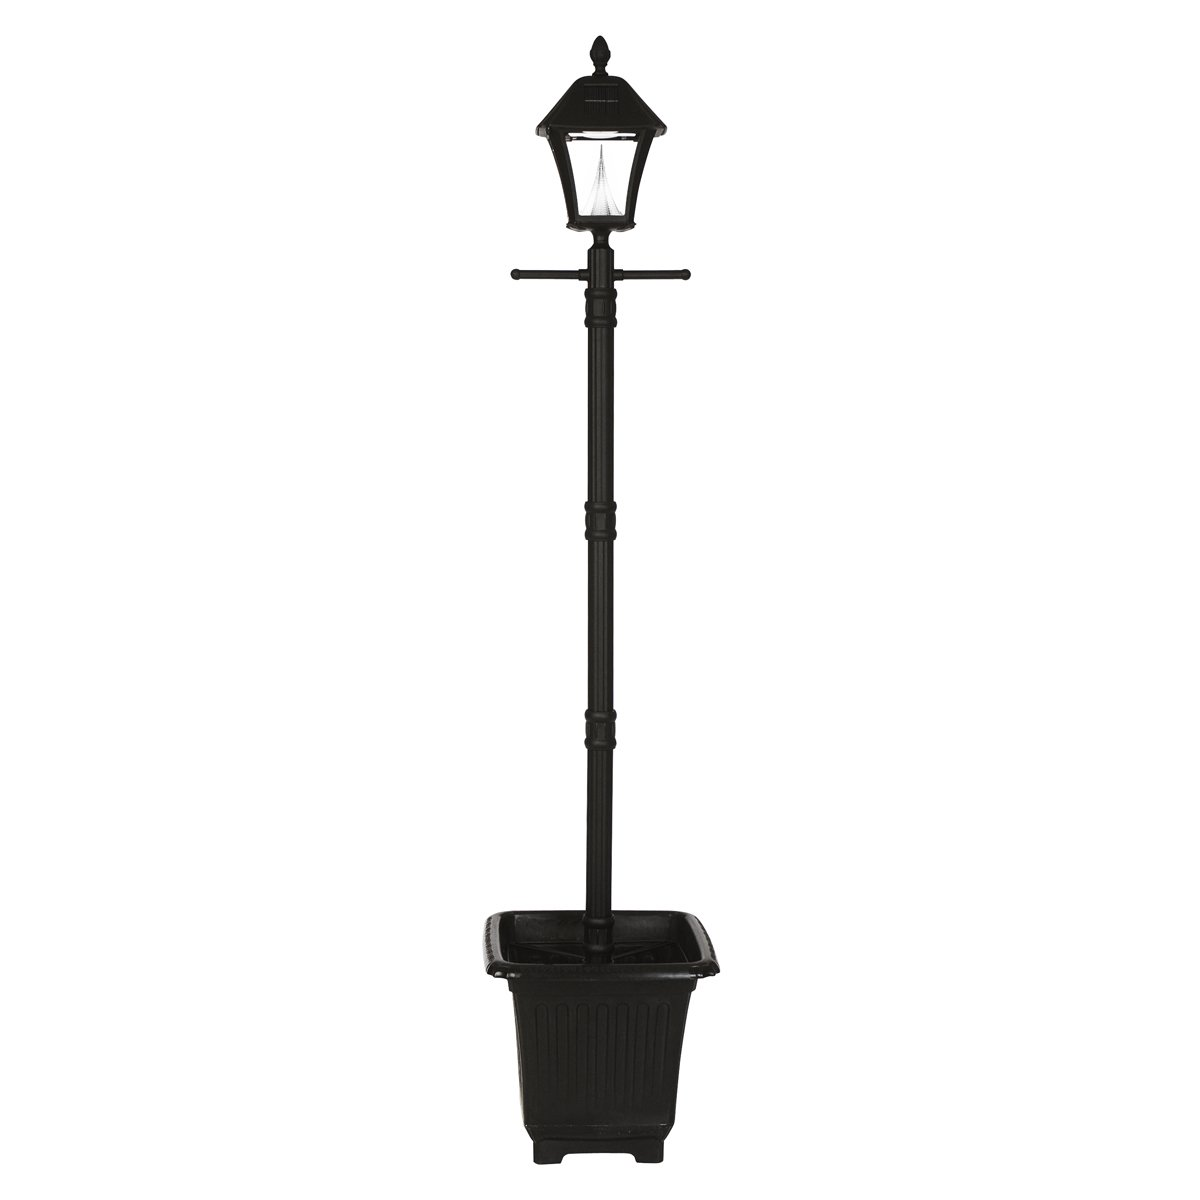 Gama Sonic Baytown Solar Outdoor Lamp Post with Planter GS-106PL - Black Finish